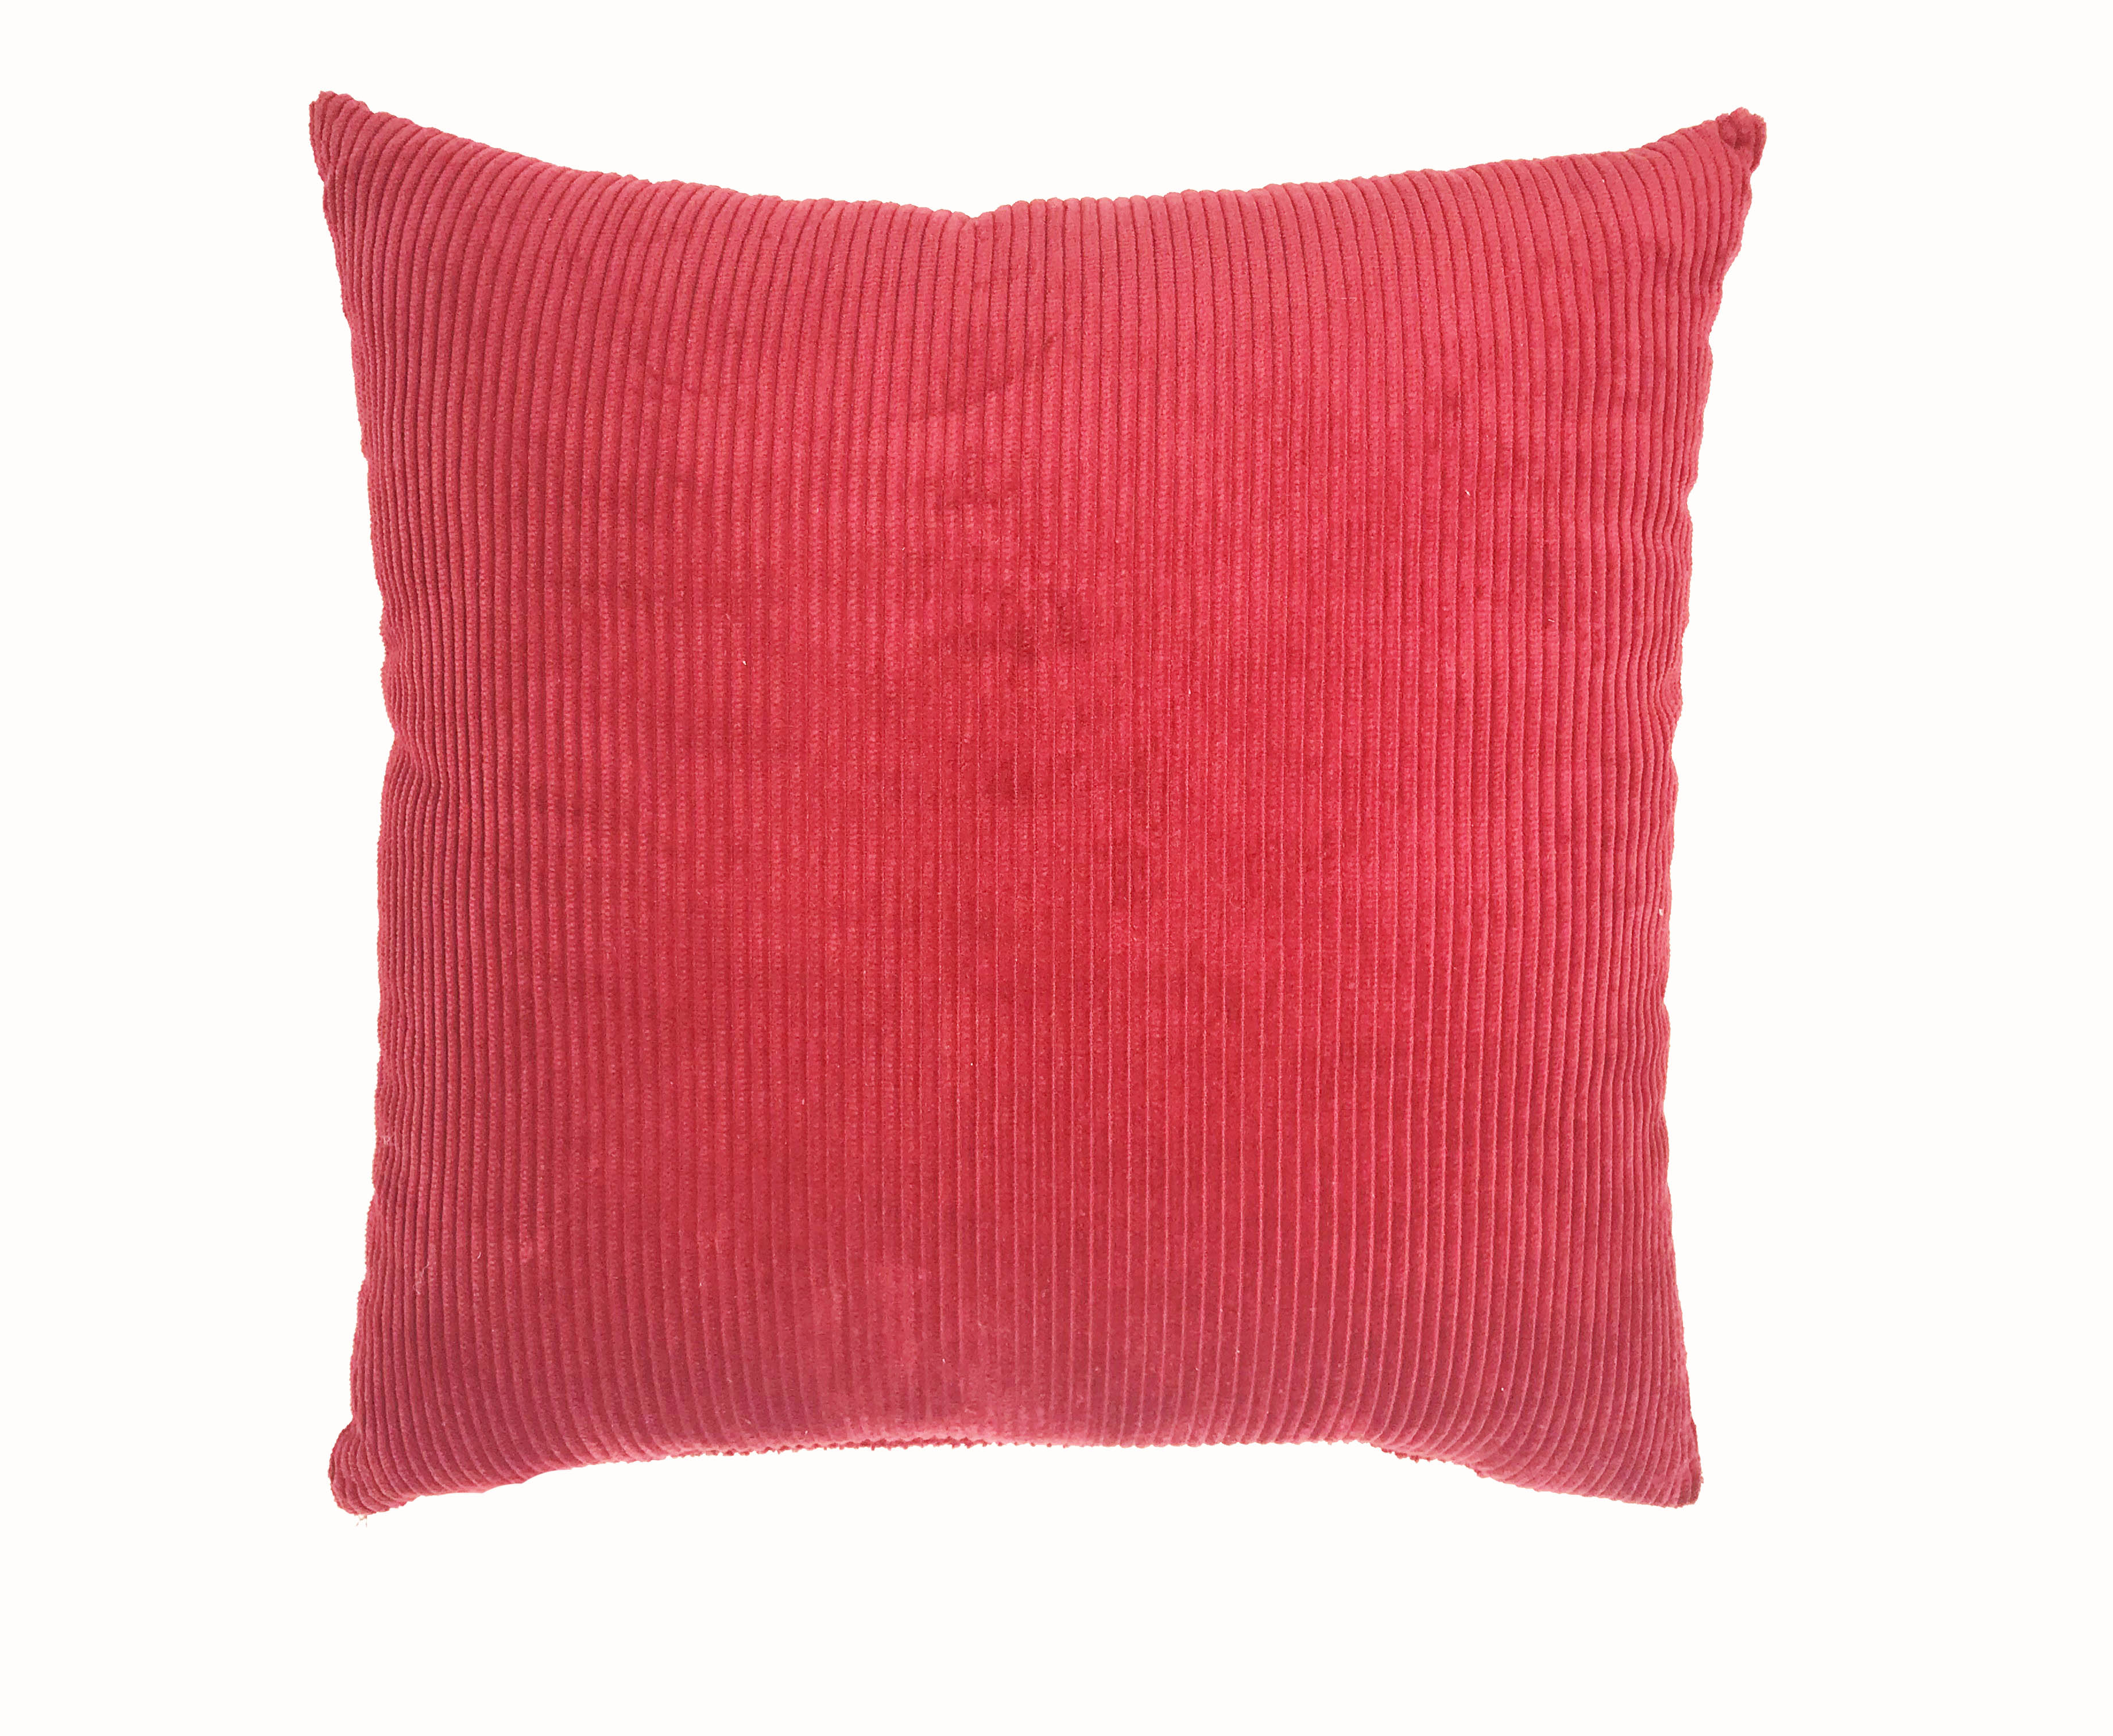 Burgundy Cord 43cm x 43cm Cushion Cover Only